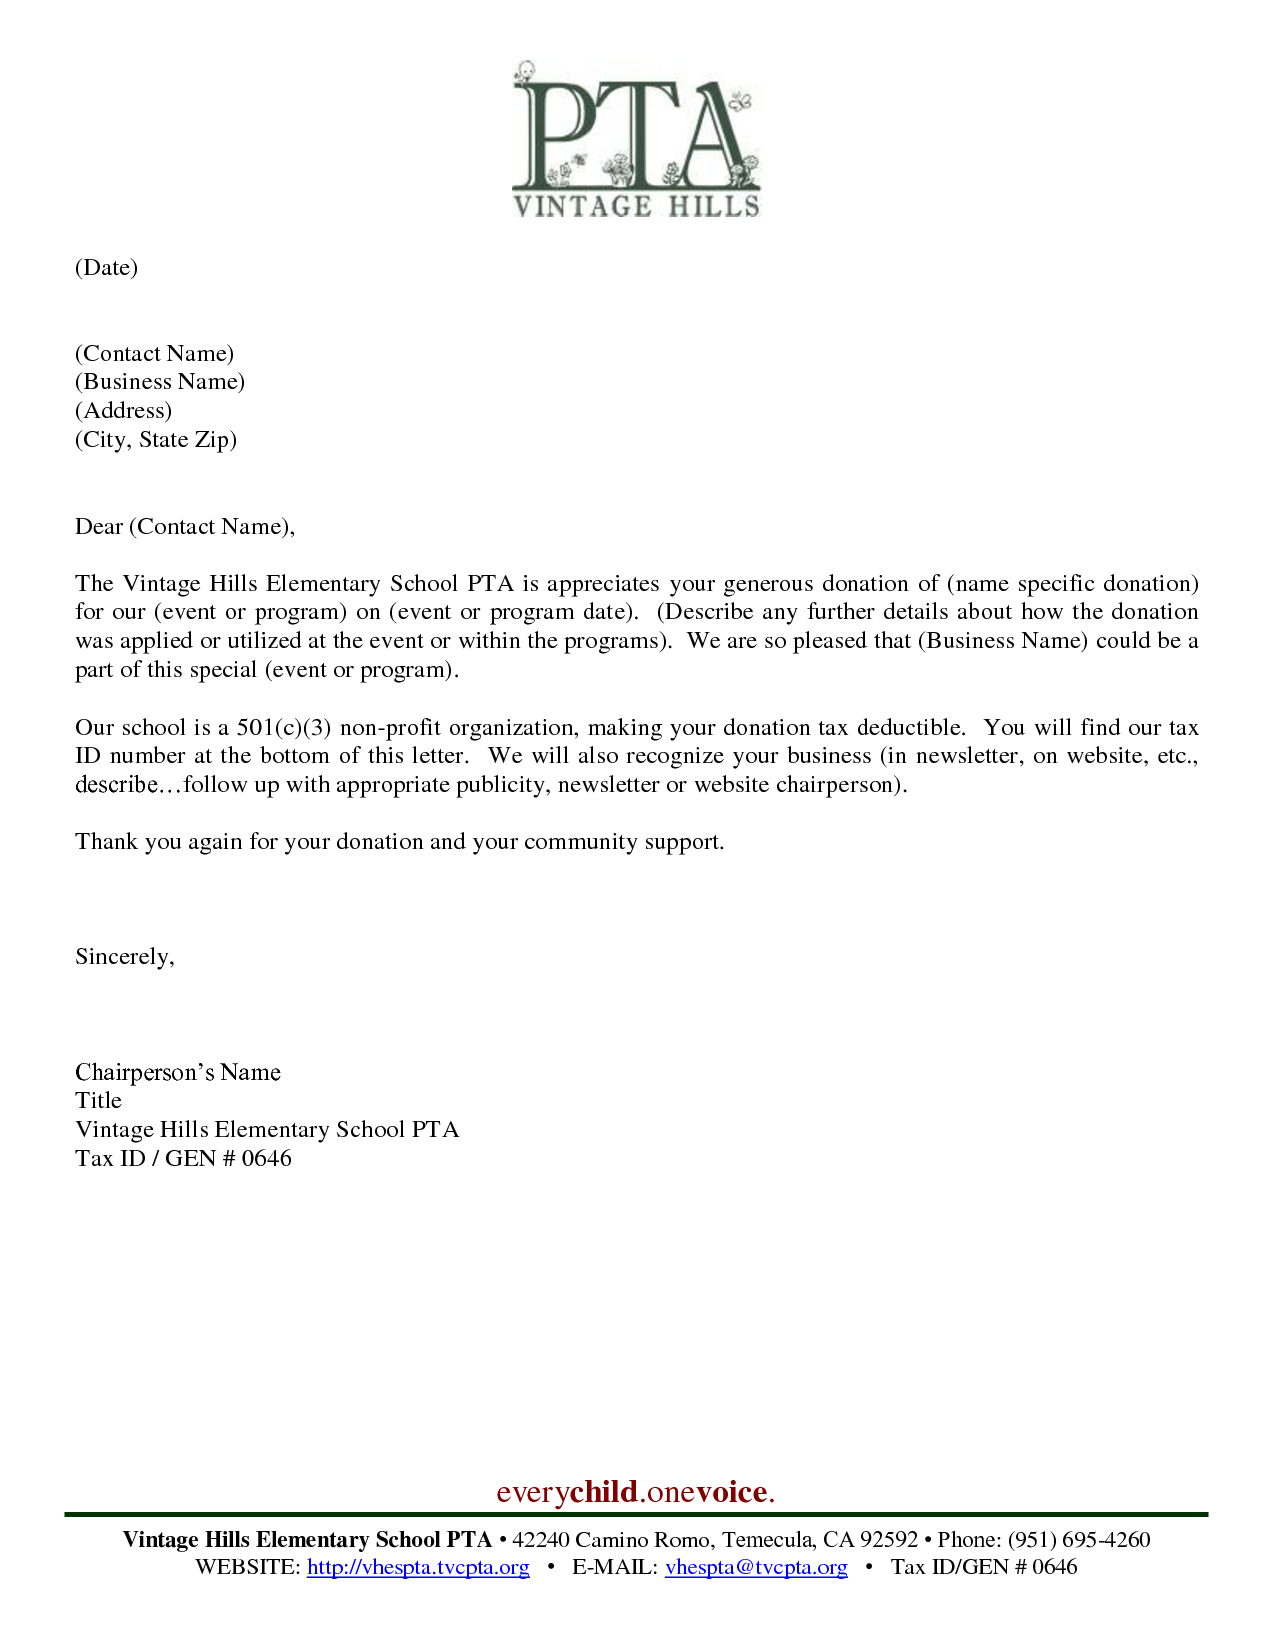 School Sponsorship Letter Template - Sample Thank You Letter for Donation to School Pdf format